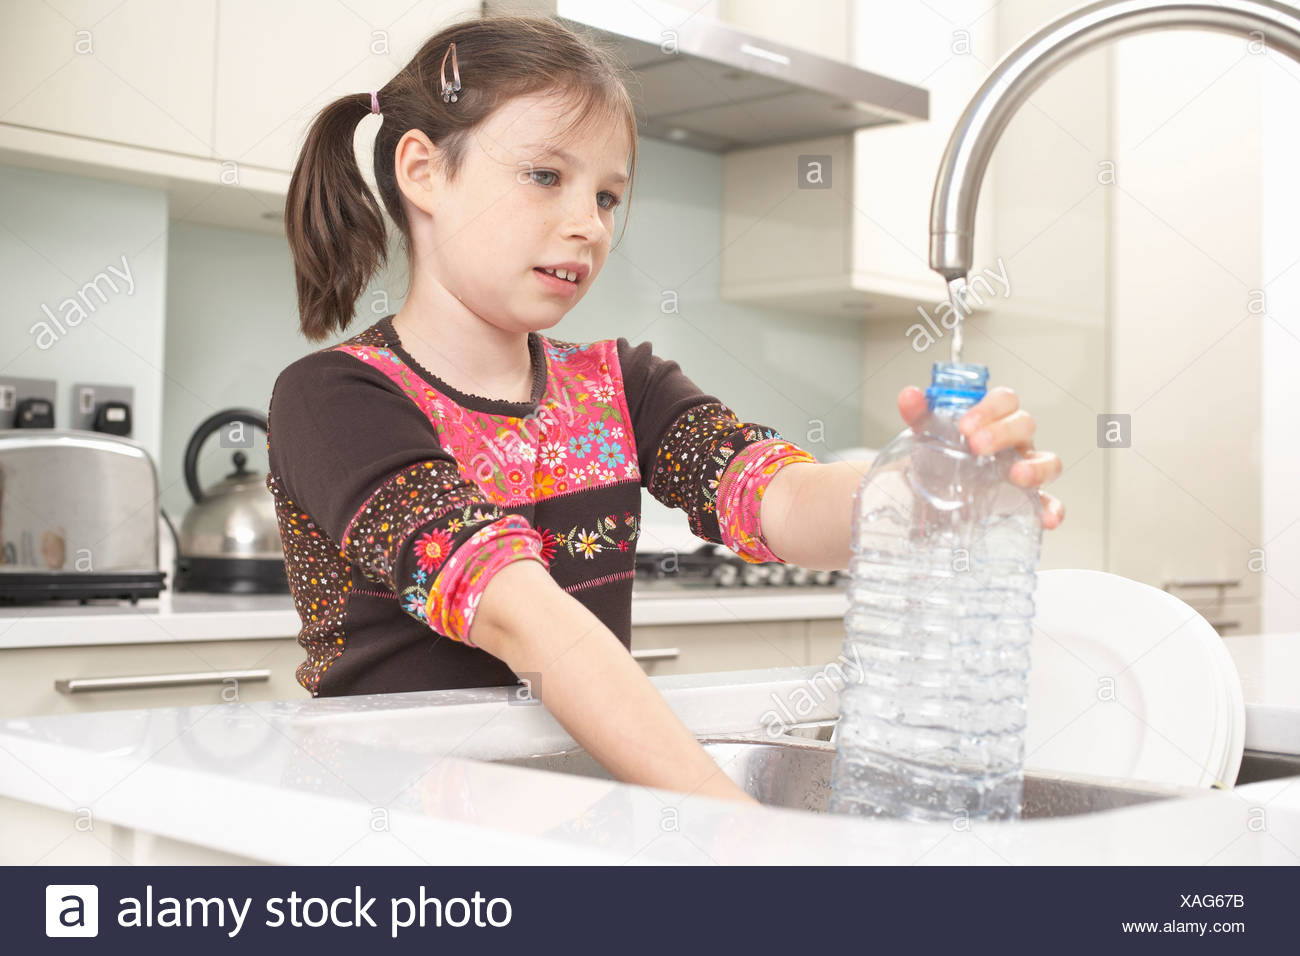 Girl filling up water bottle in kitchen - Stock Image